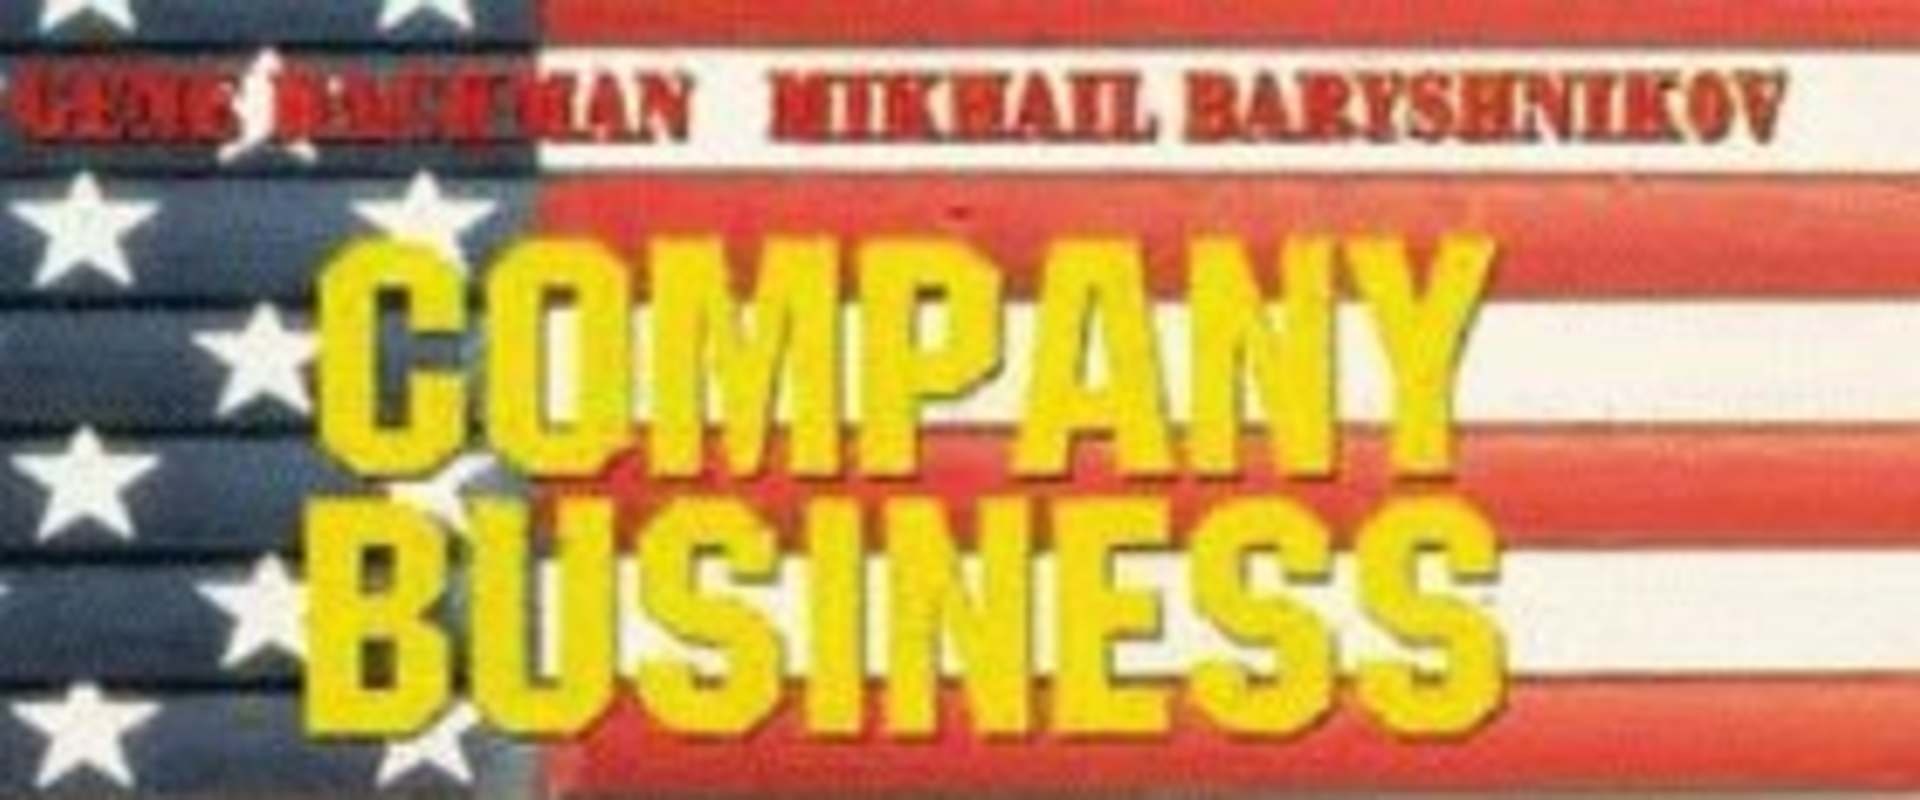 Company Business background 2